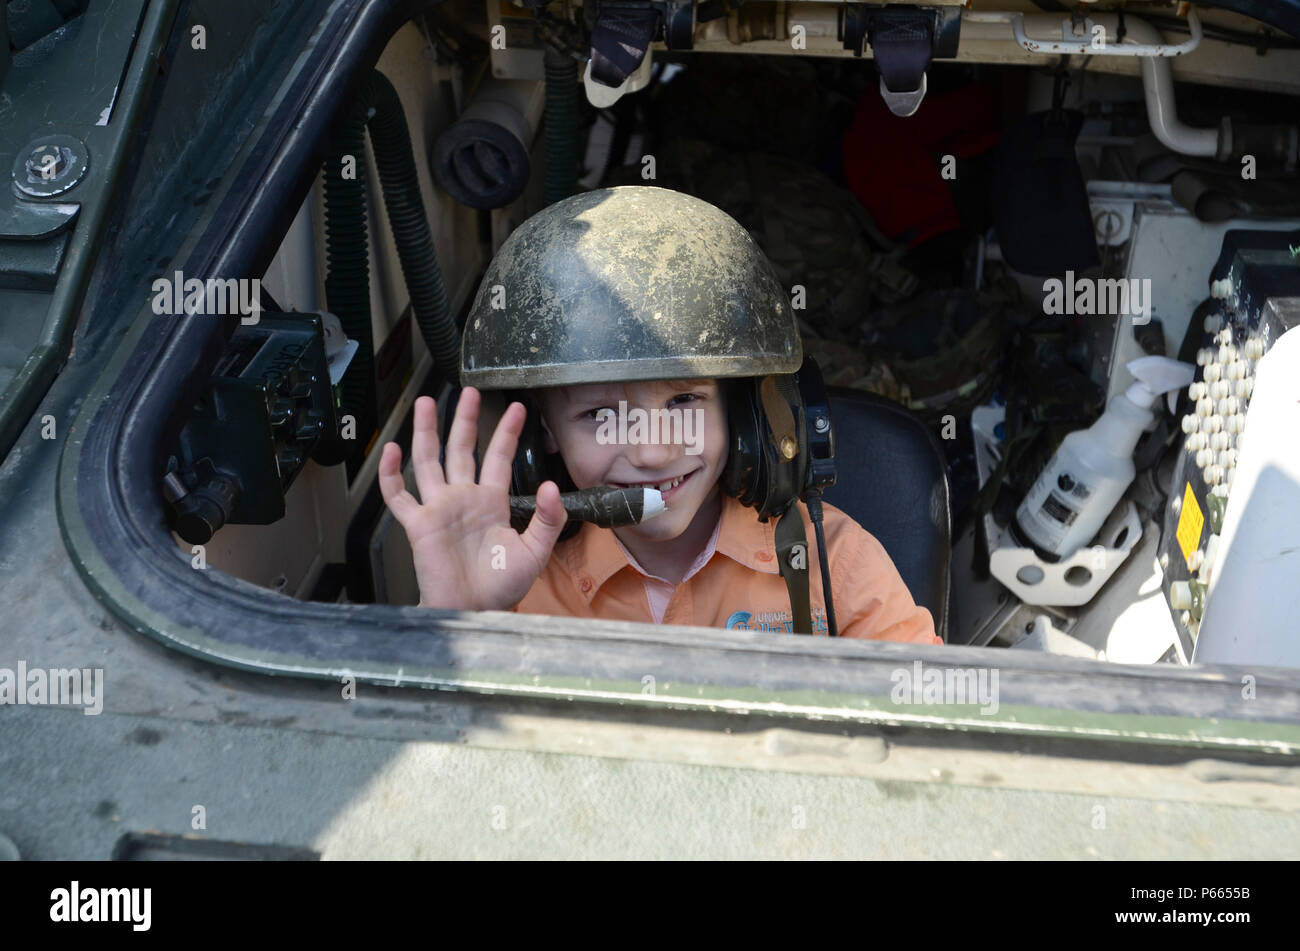 A young Moldovan boy smiles and waves as he sits inside a U.S. Army M1132 Engineer Squad Vehicle (ESV), Stryker, during a static display in Chisinau, Moldova, May 8, 2016. (Photo by U.S. Army Staff Sgt. Steven M. Colvin) - Stock Image